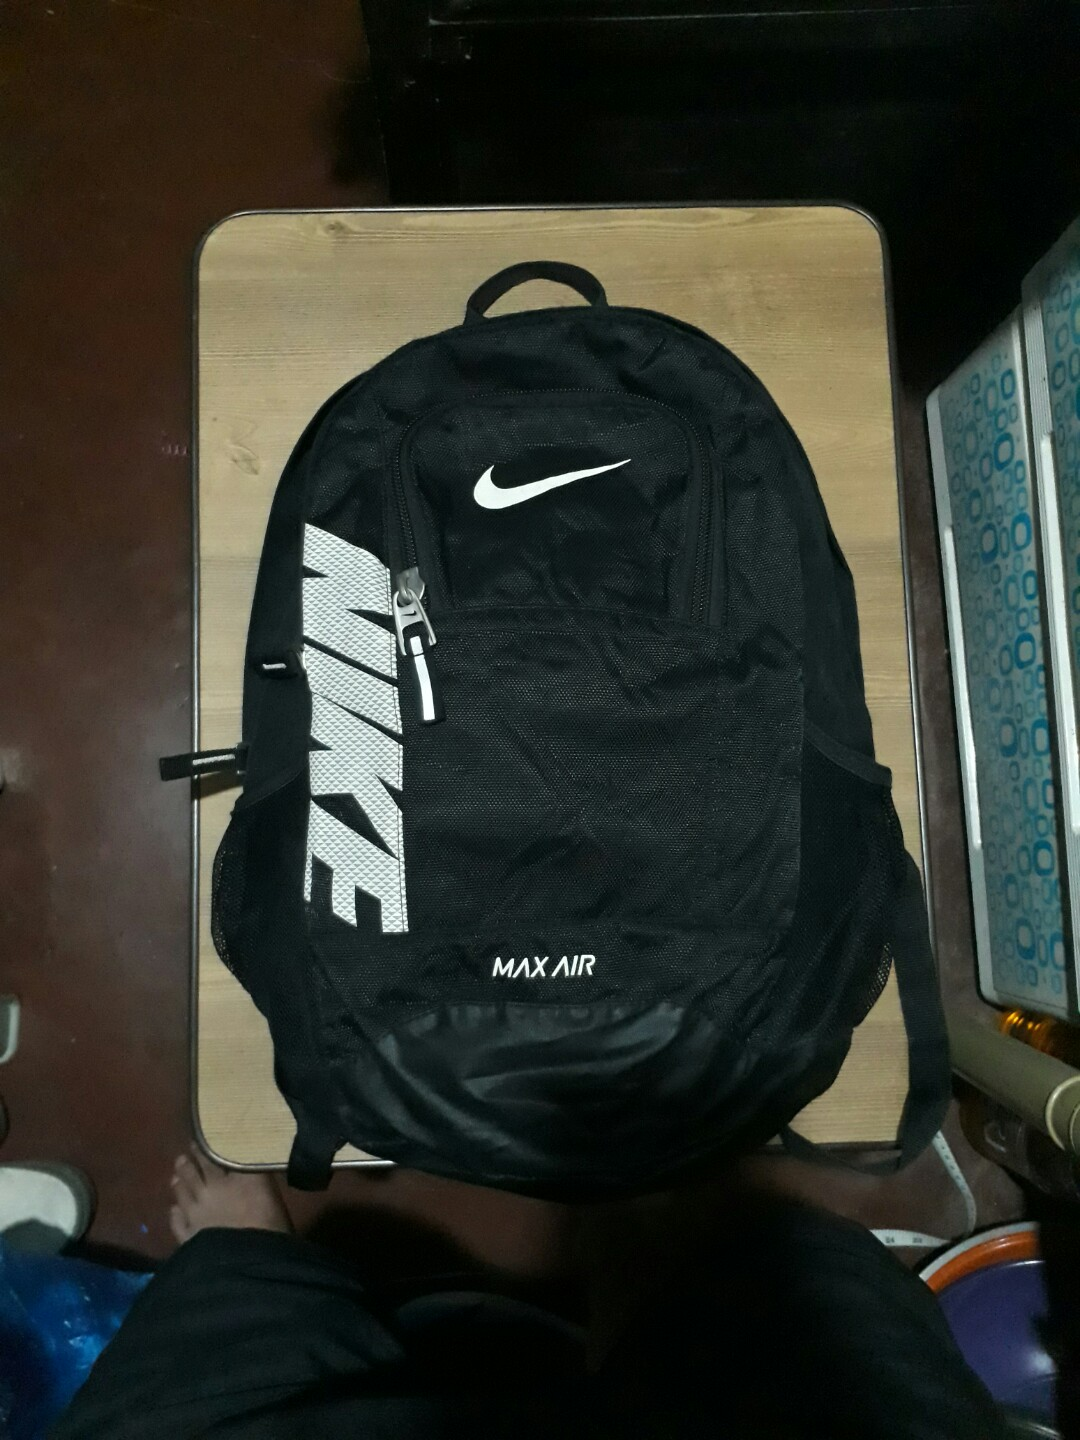 79e920b69a5 Nike Max Air backpack, Men s Fashion, Bags   Wallets on Carousell